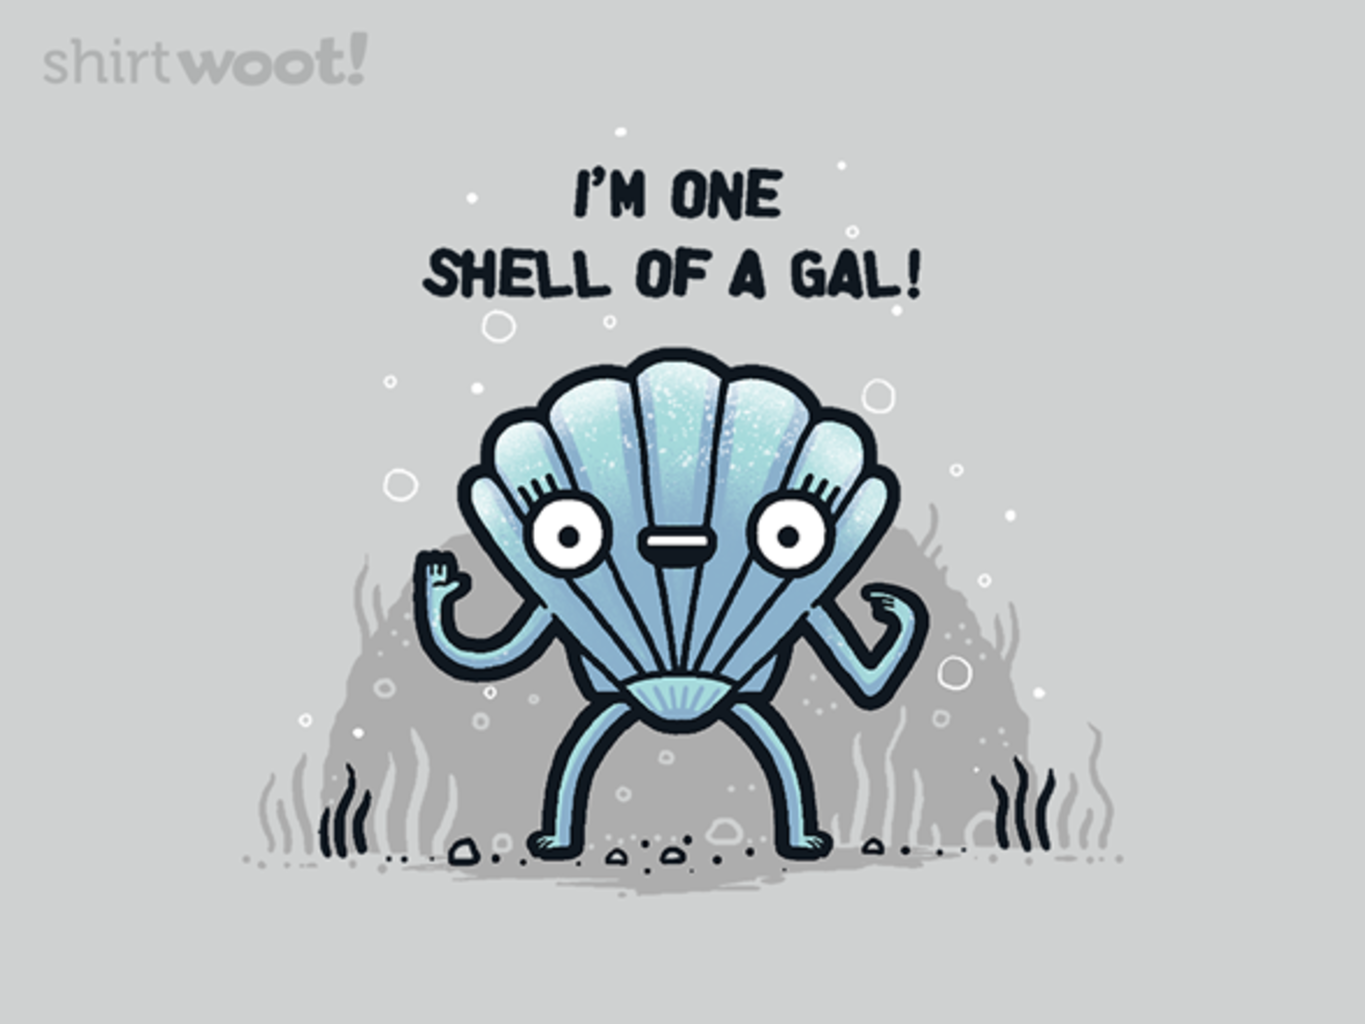 Woot!: A Shell of a Gal